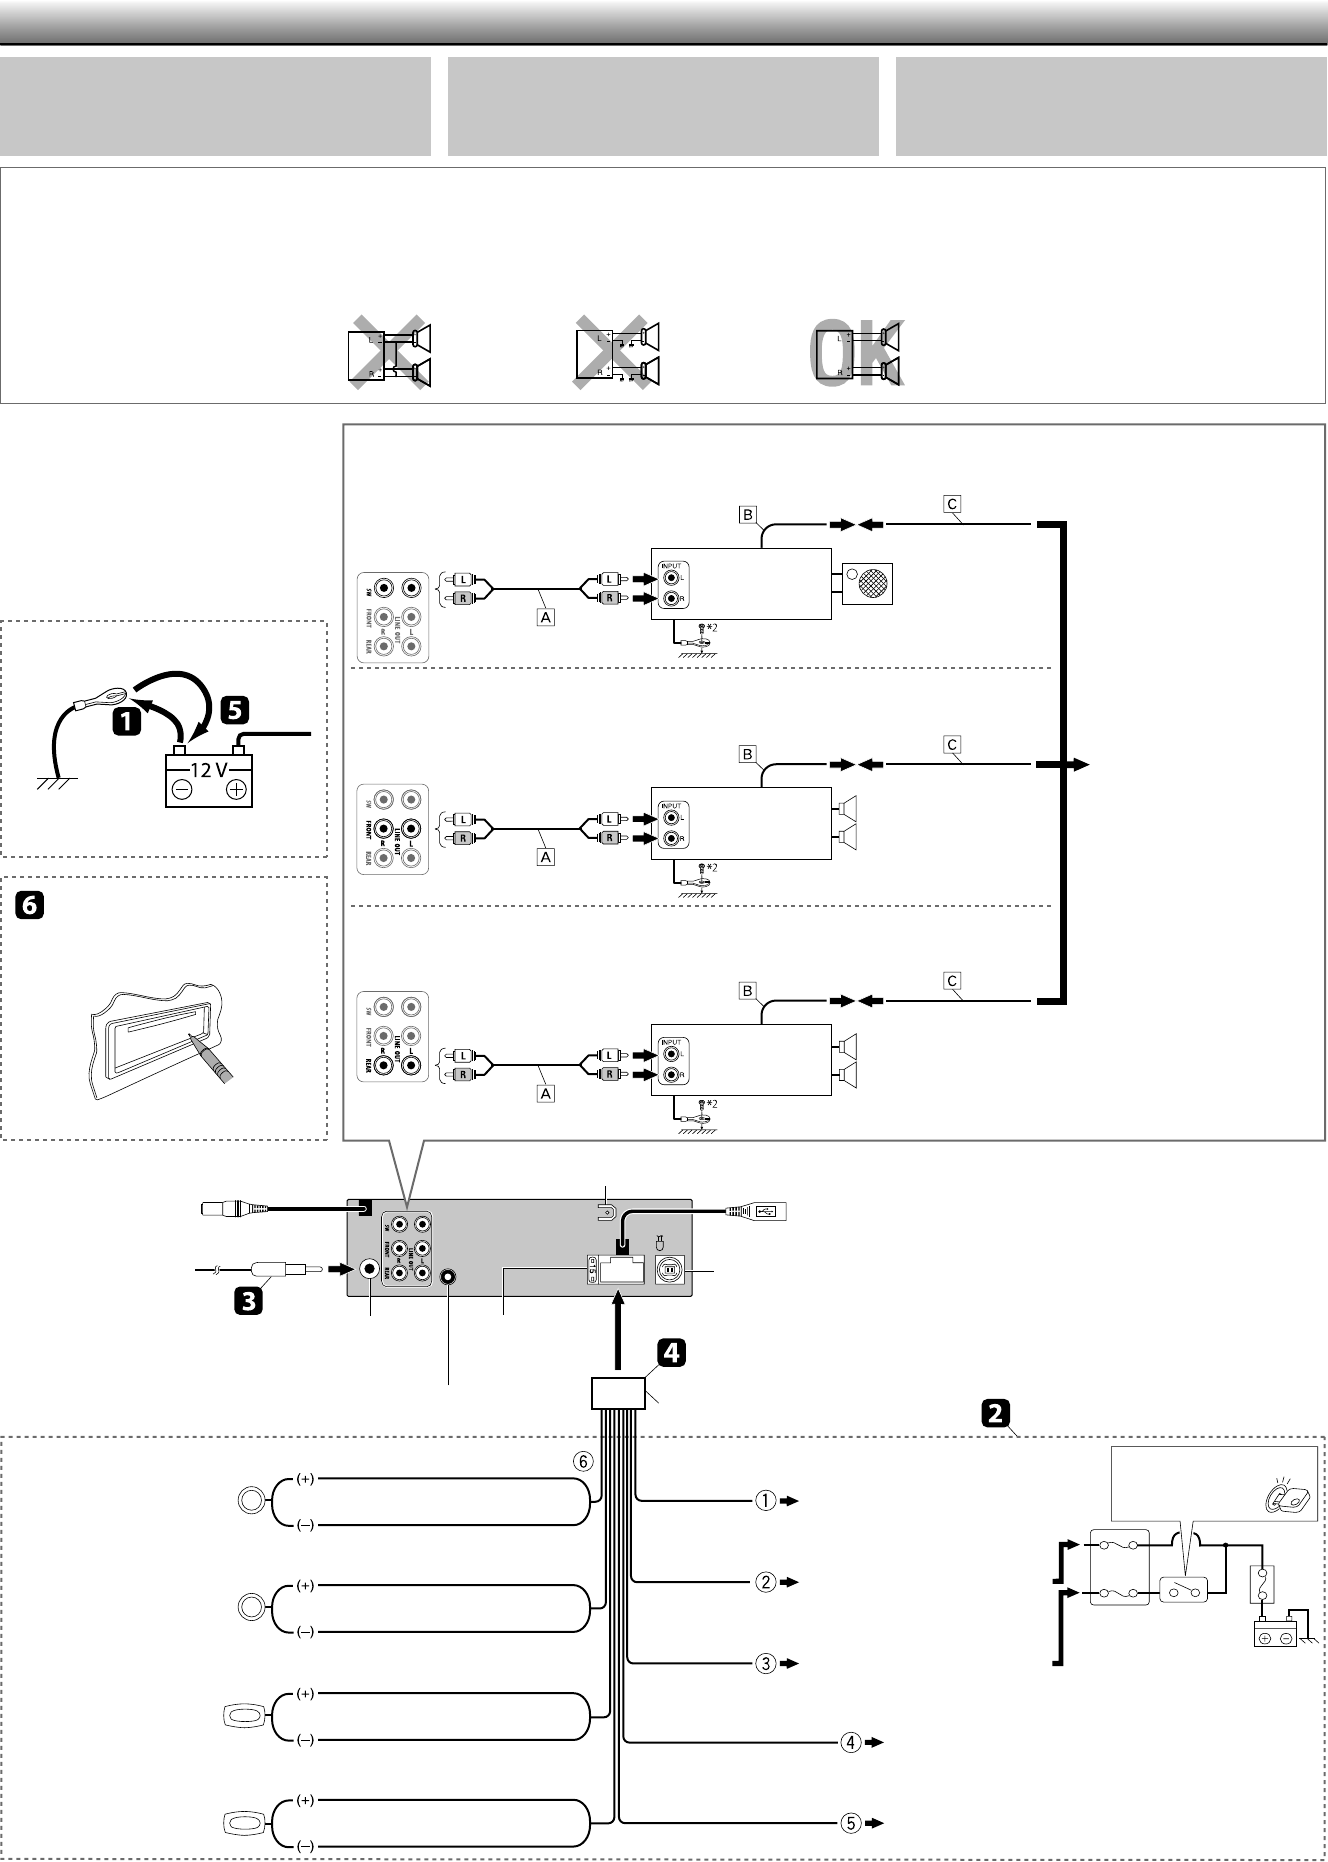 Jvc Kd Sr41 Wiring Diagram 26 Images Kw Av60bt 715f0154 69a4 48db 8be7 F7c9438ff472 Bg2 Page 2 Of Car Stereo System A815 User